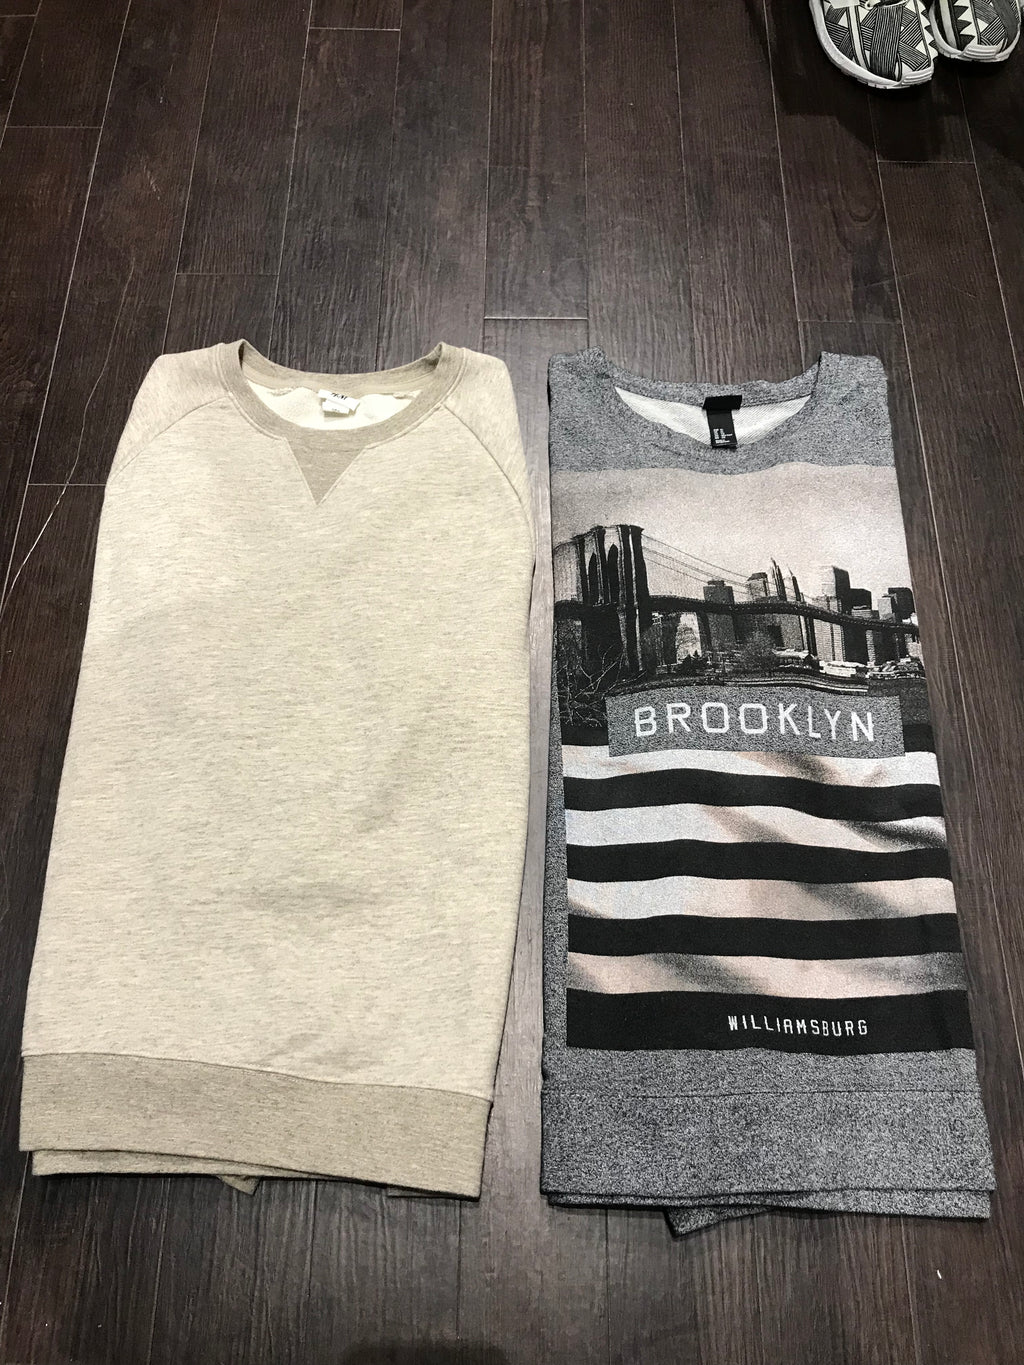 BUNDLE! H&M Crewneck Sweatshirts: Sz XL